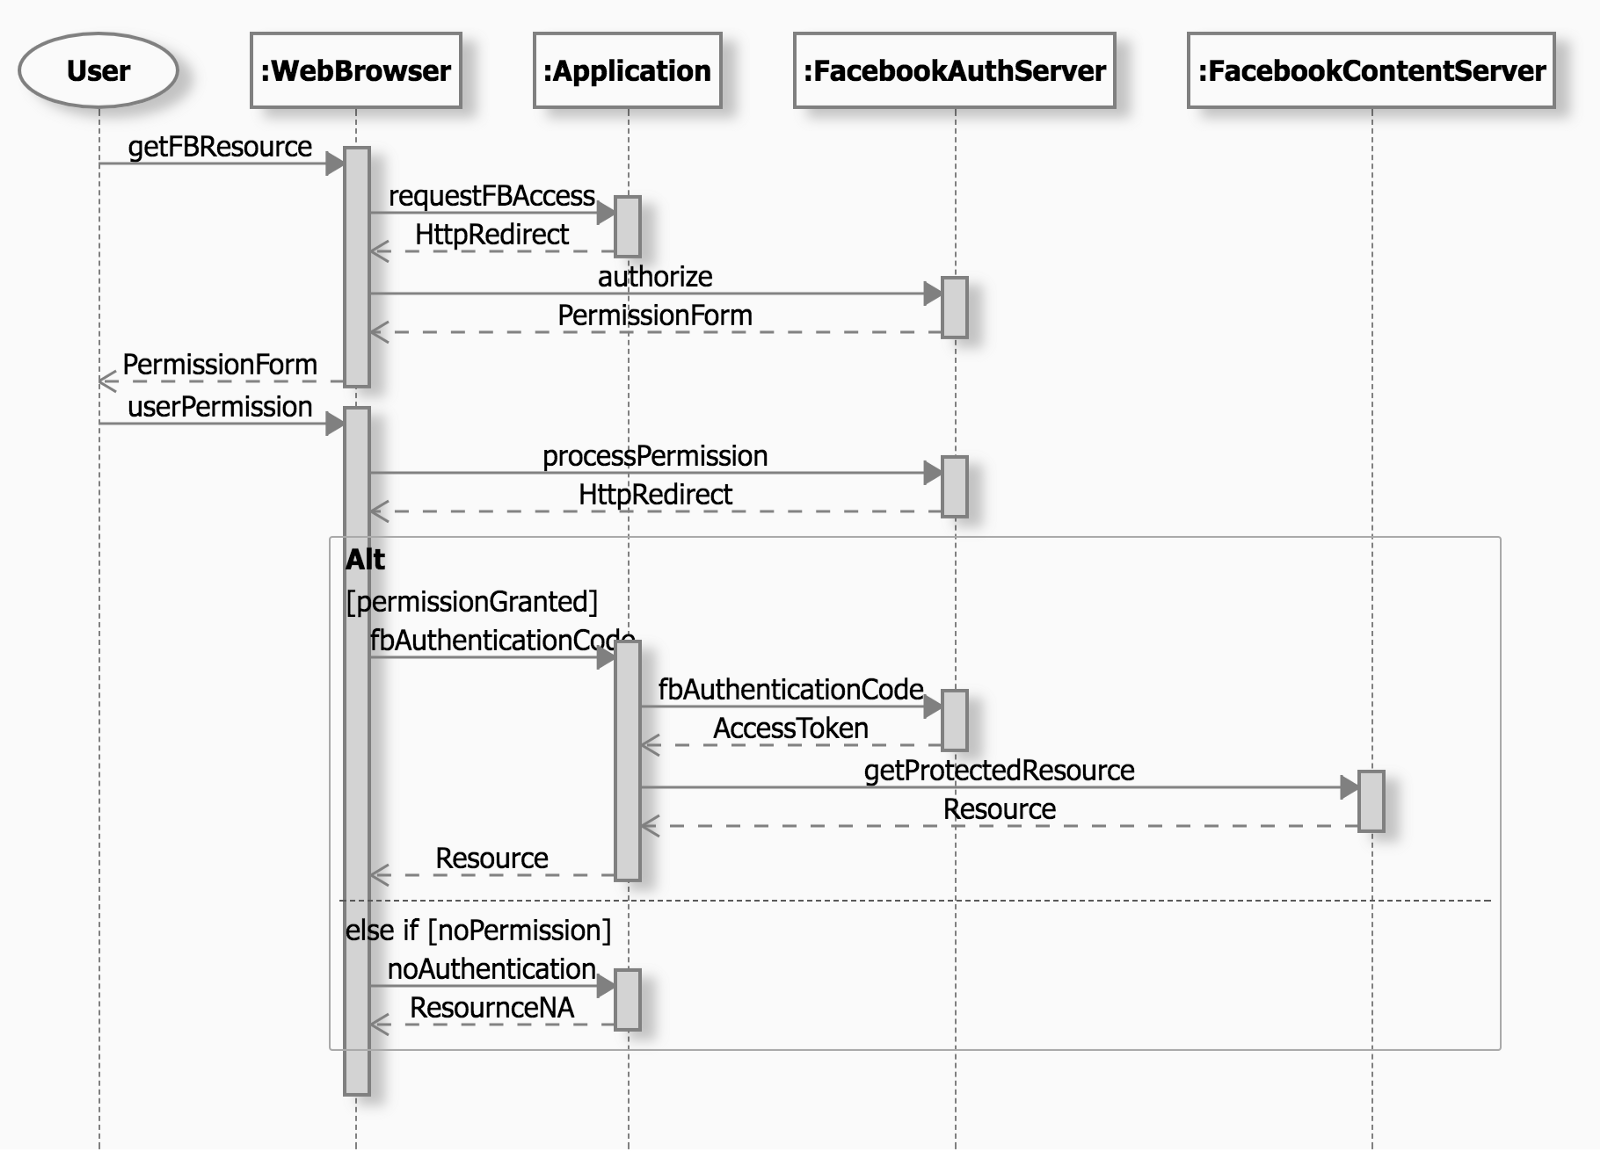 Zenuml sequence diagram examples sequence diagram zenuml sequence diagram examples zenuml medium ccuart Images